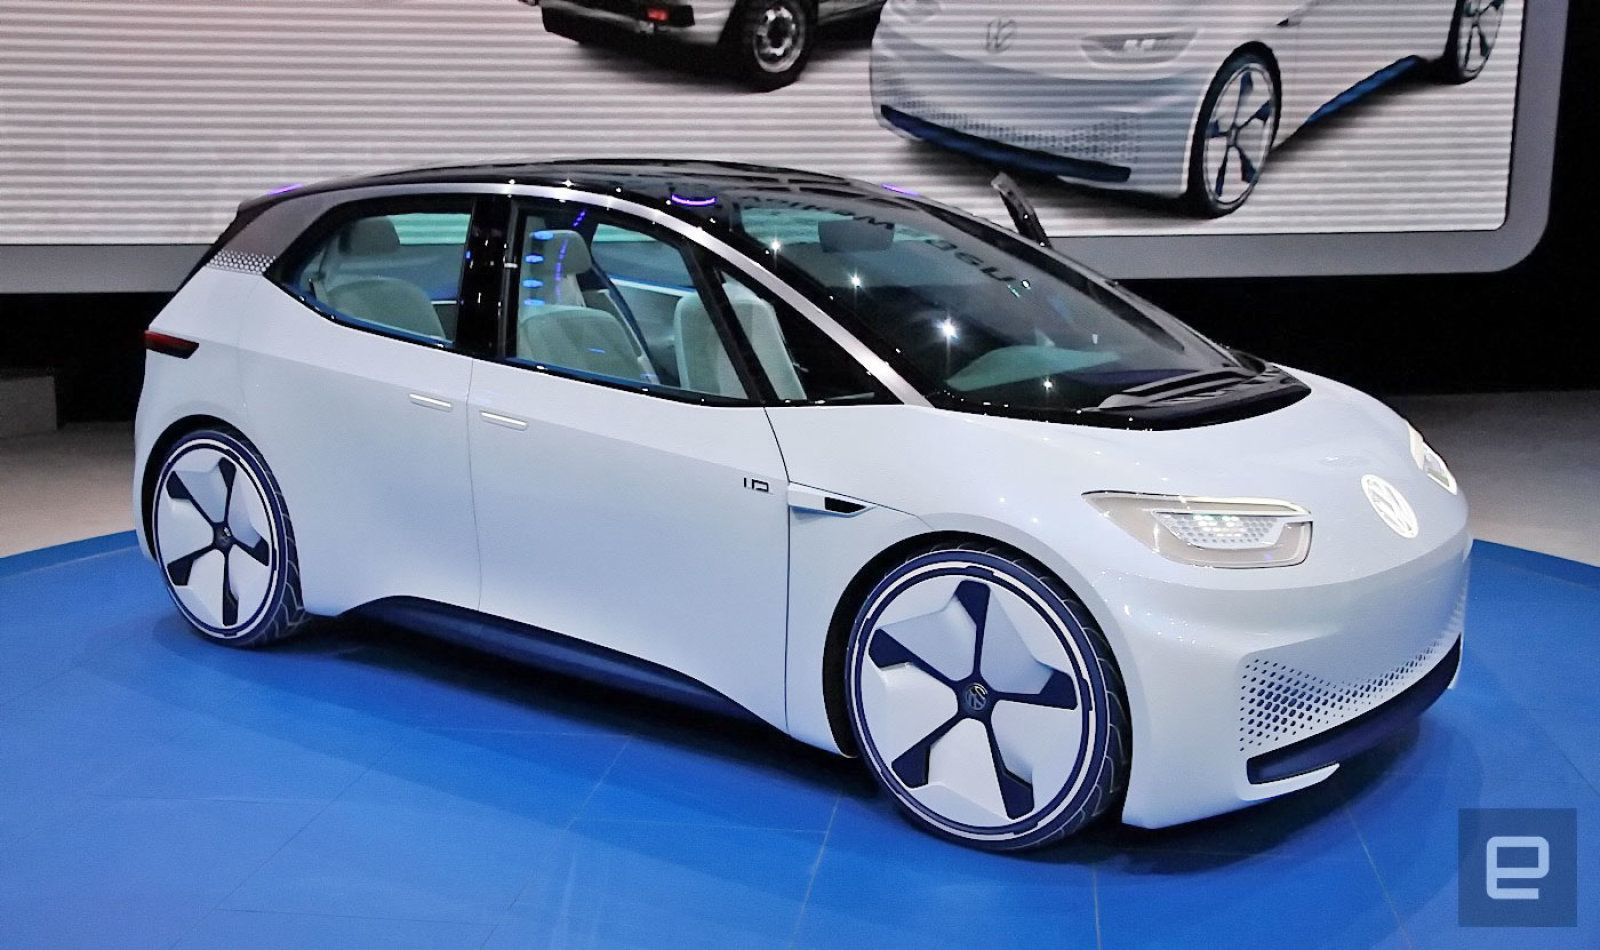 Vw S I D Ev Will Deliver A 300 Mile Range For The Price Of A Golf Volkswagen New Cars New Engine